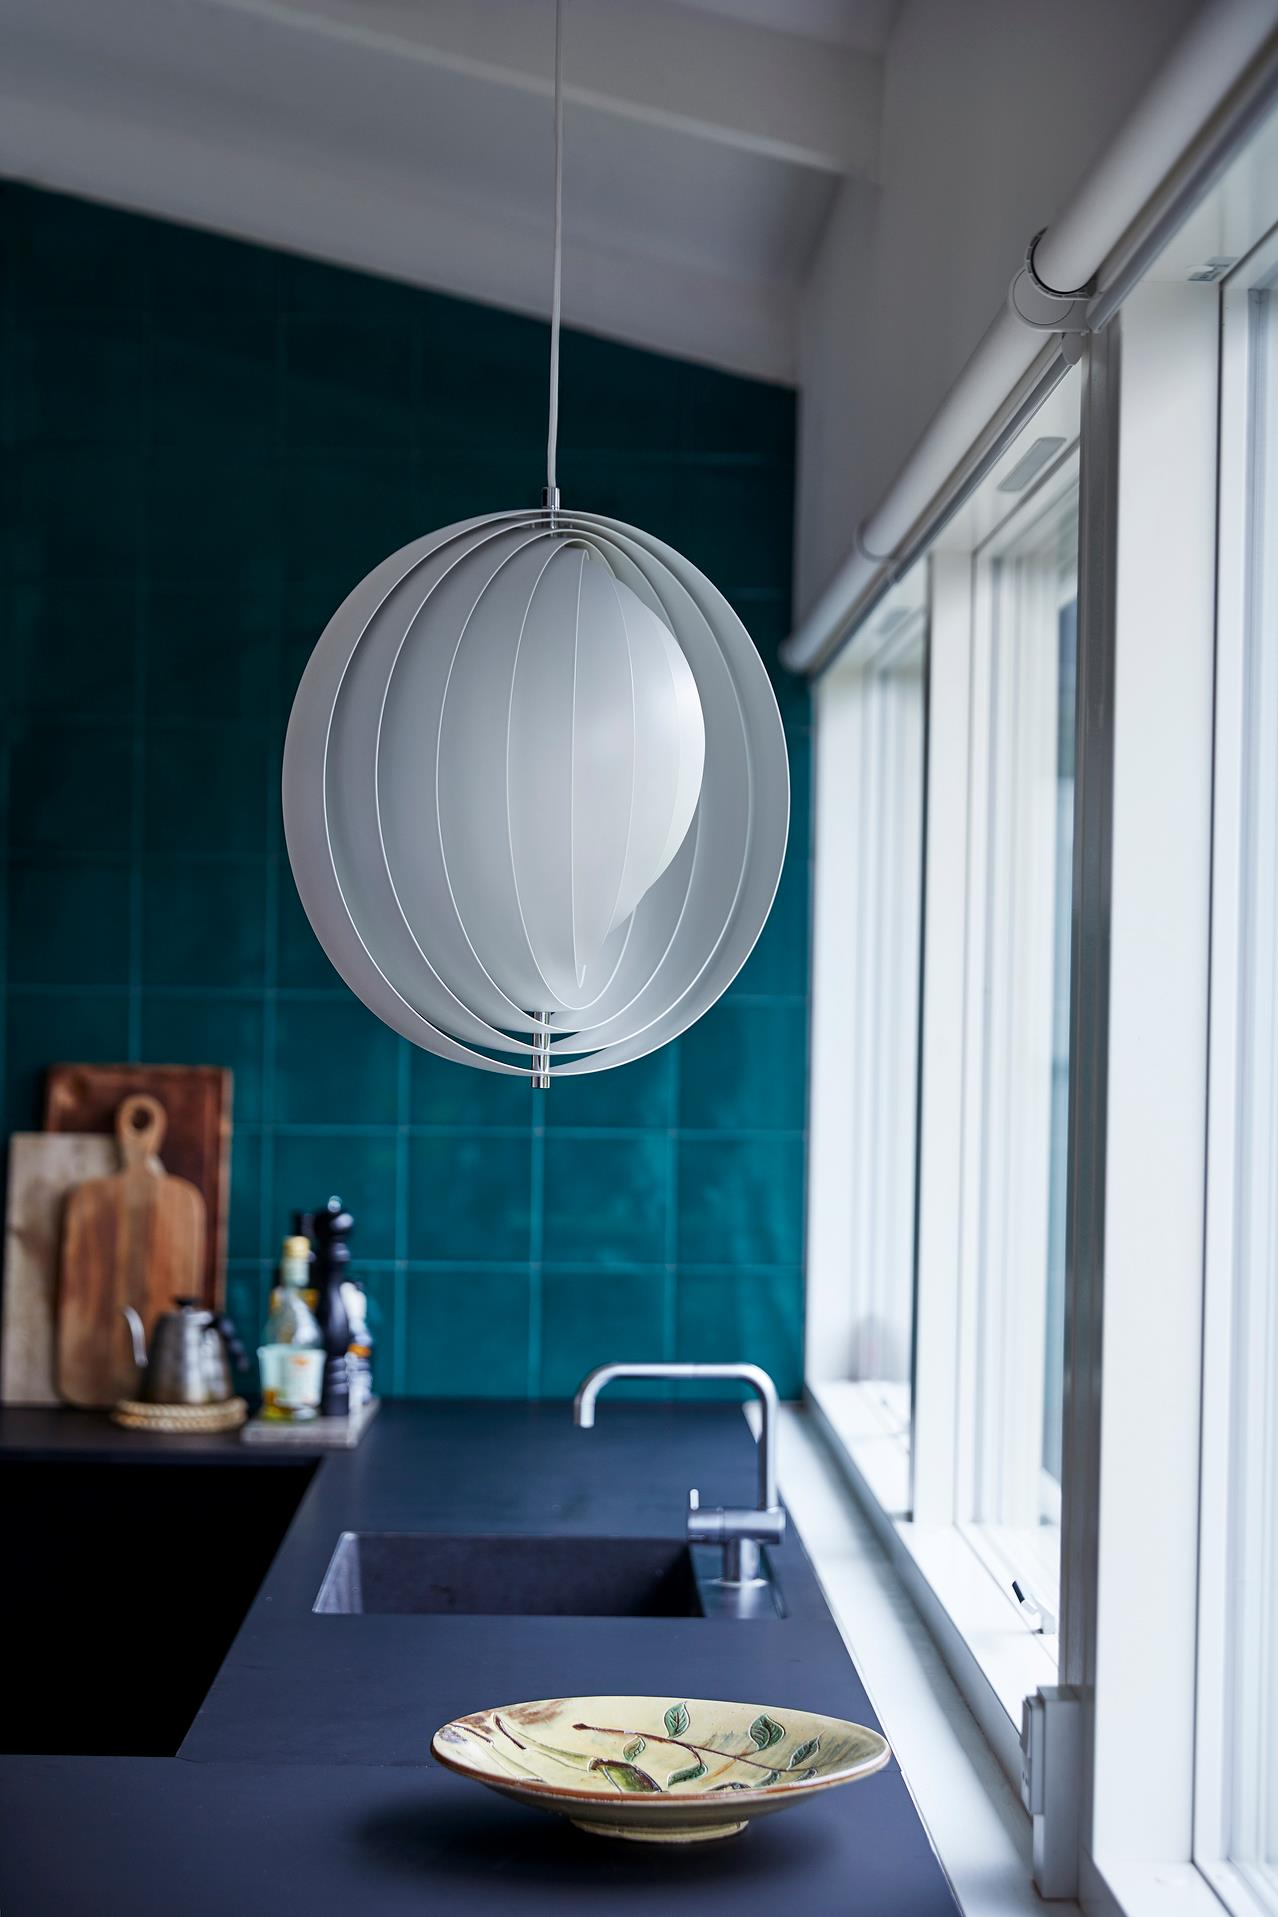 60th Anniversary; the Moon pendant by Verner Panton